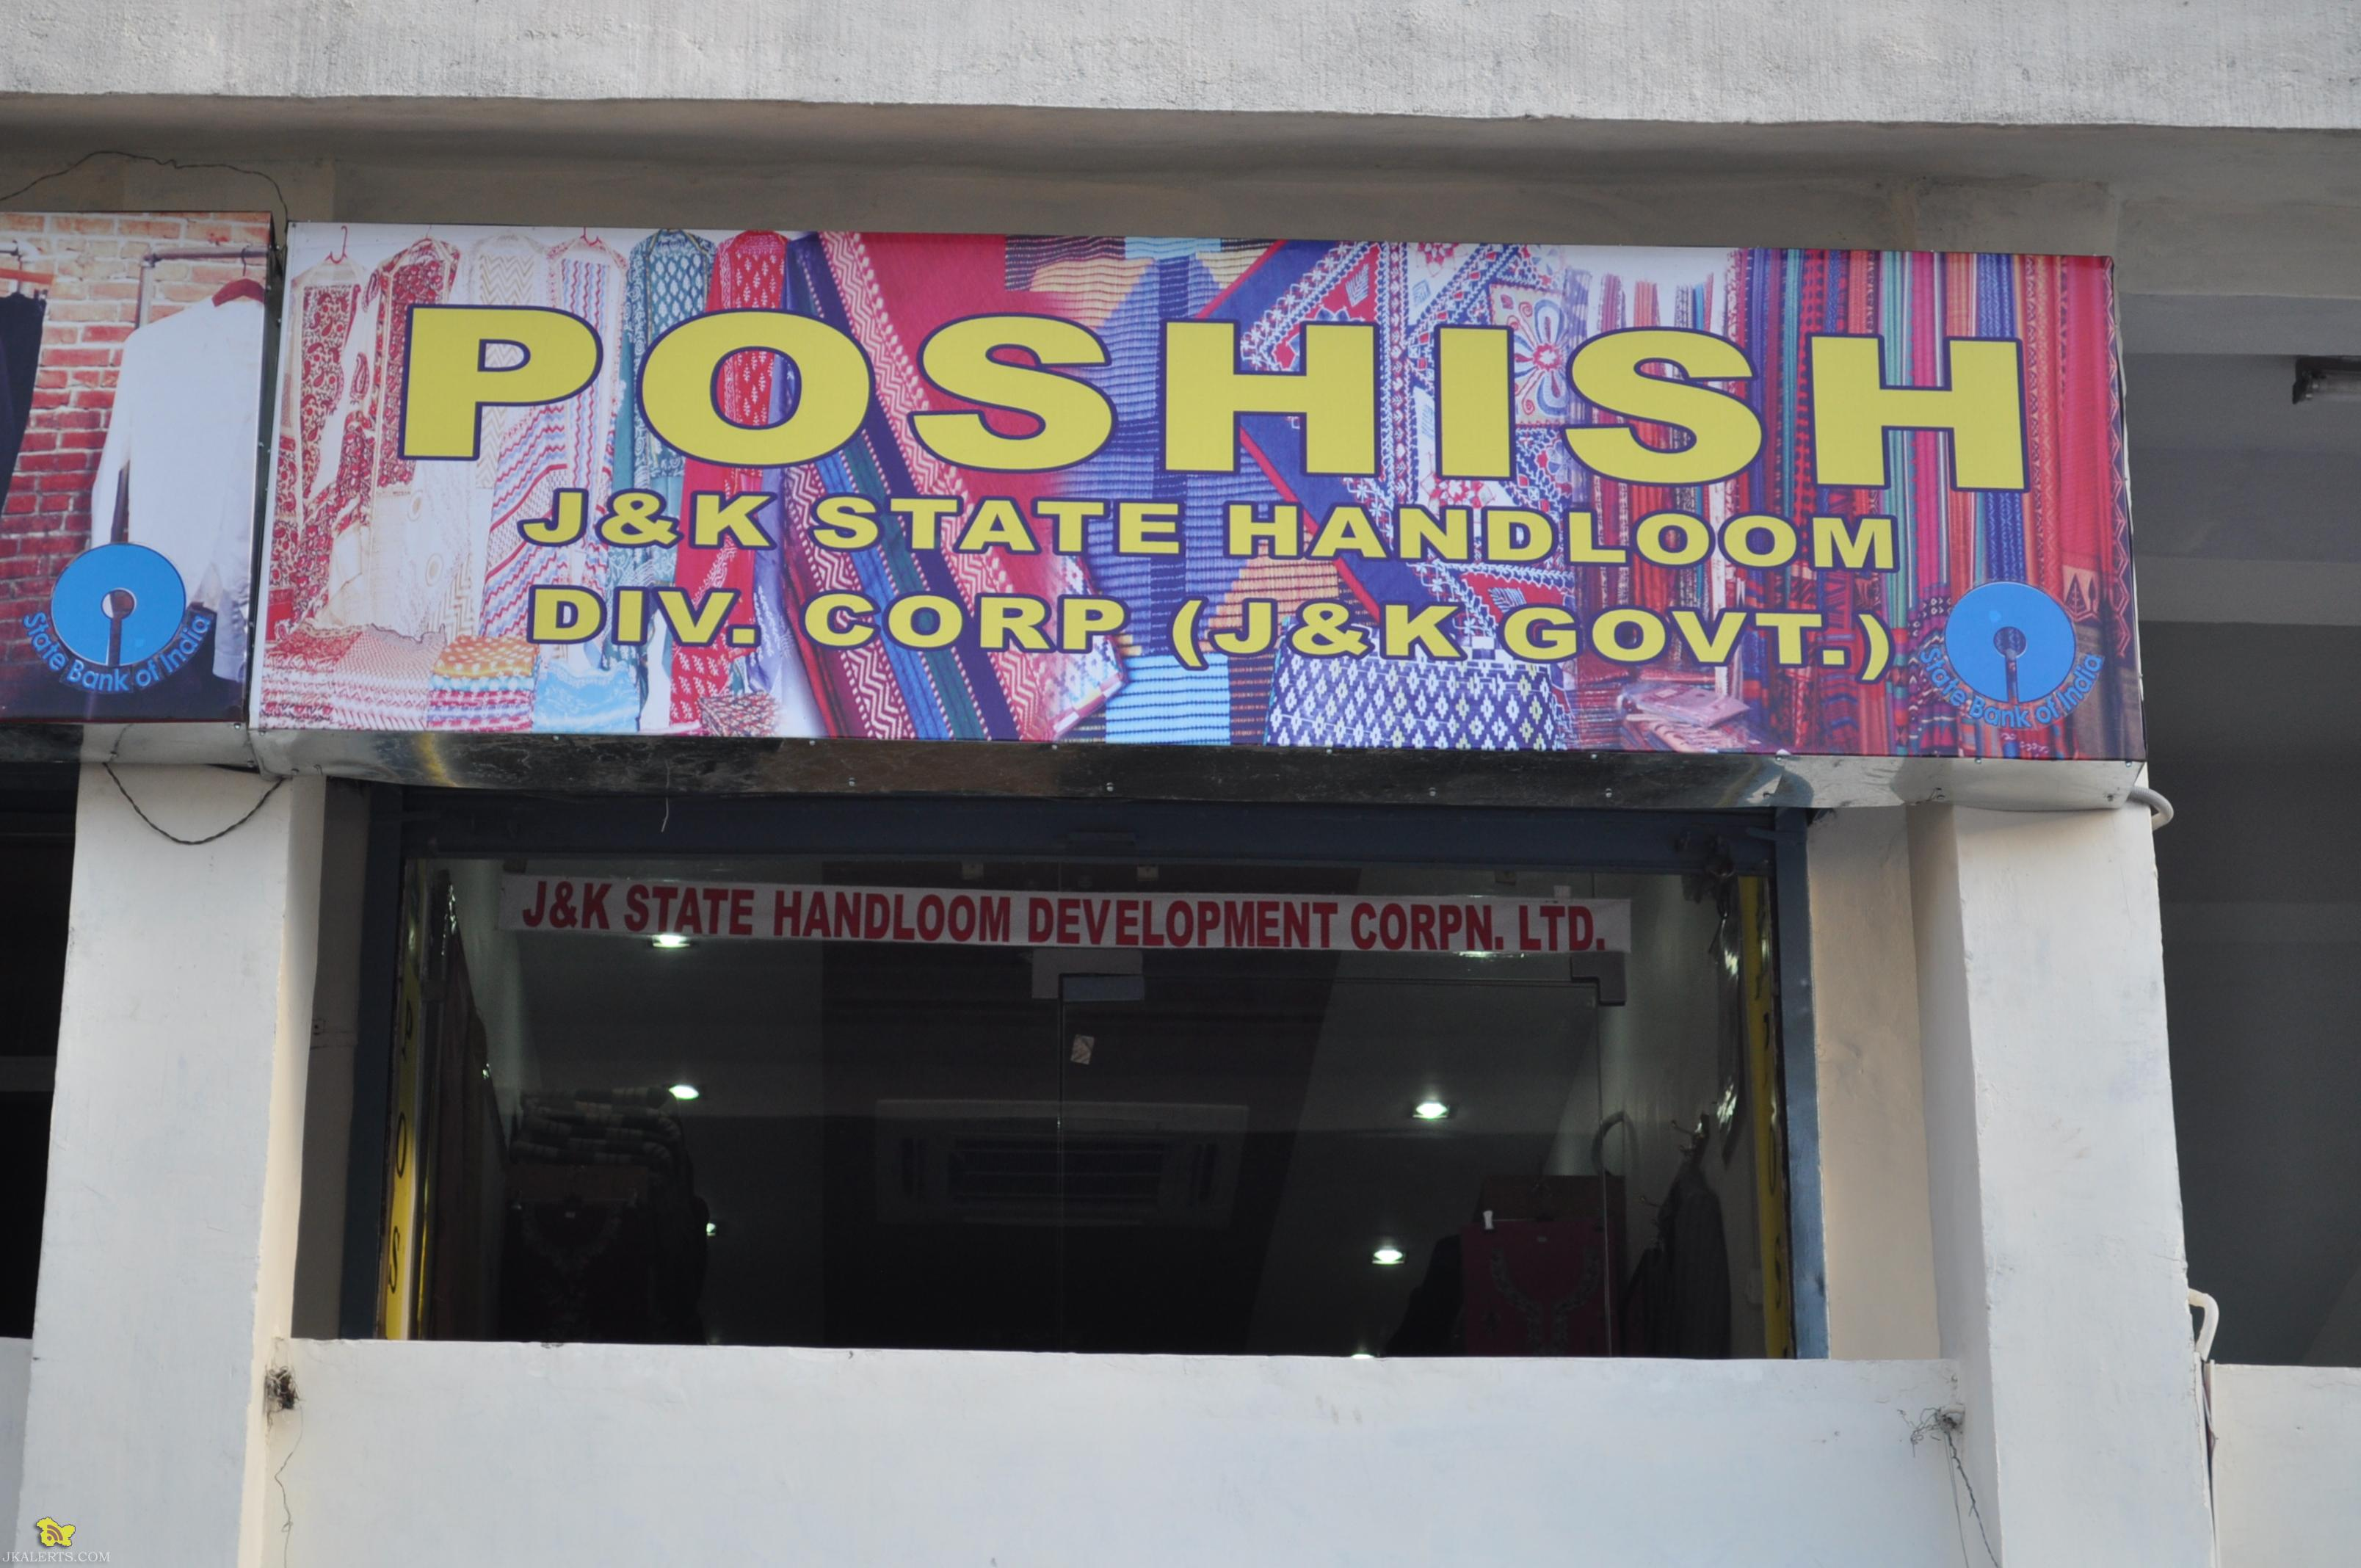 J&K Stale Handloom Development Corporation Poshish OFFERS FLAT 20%